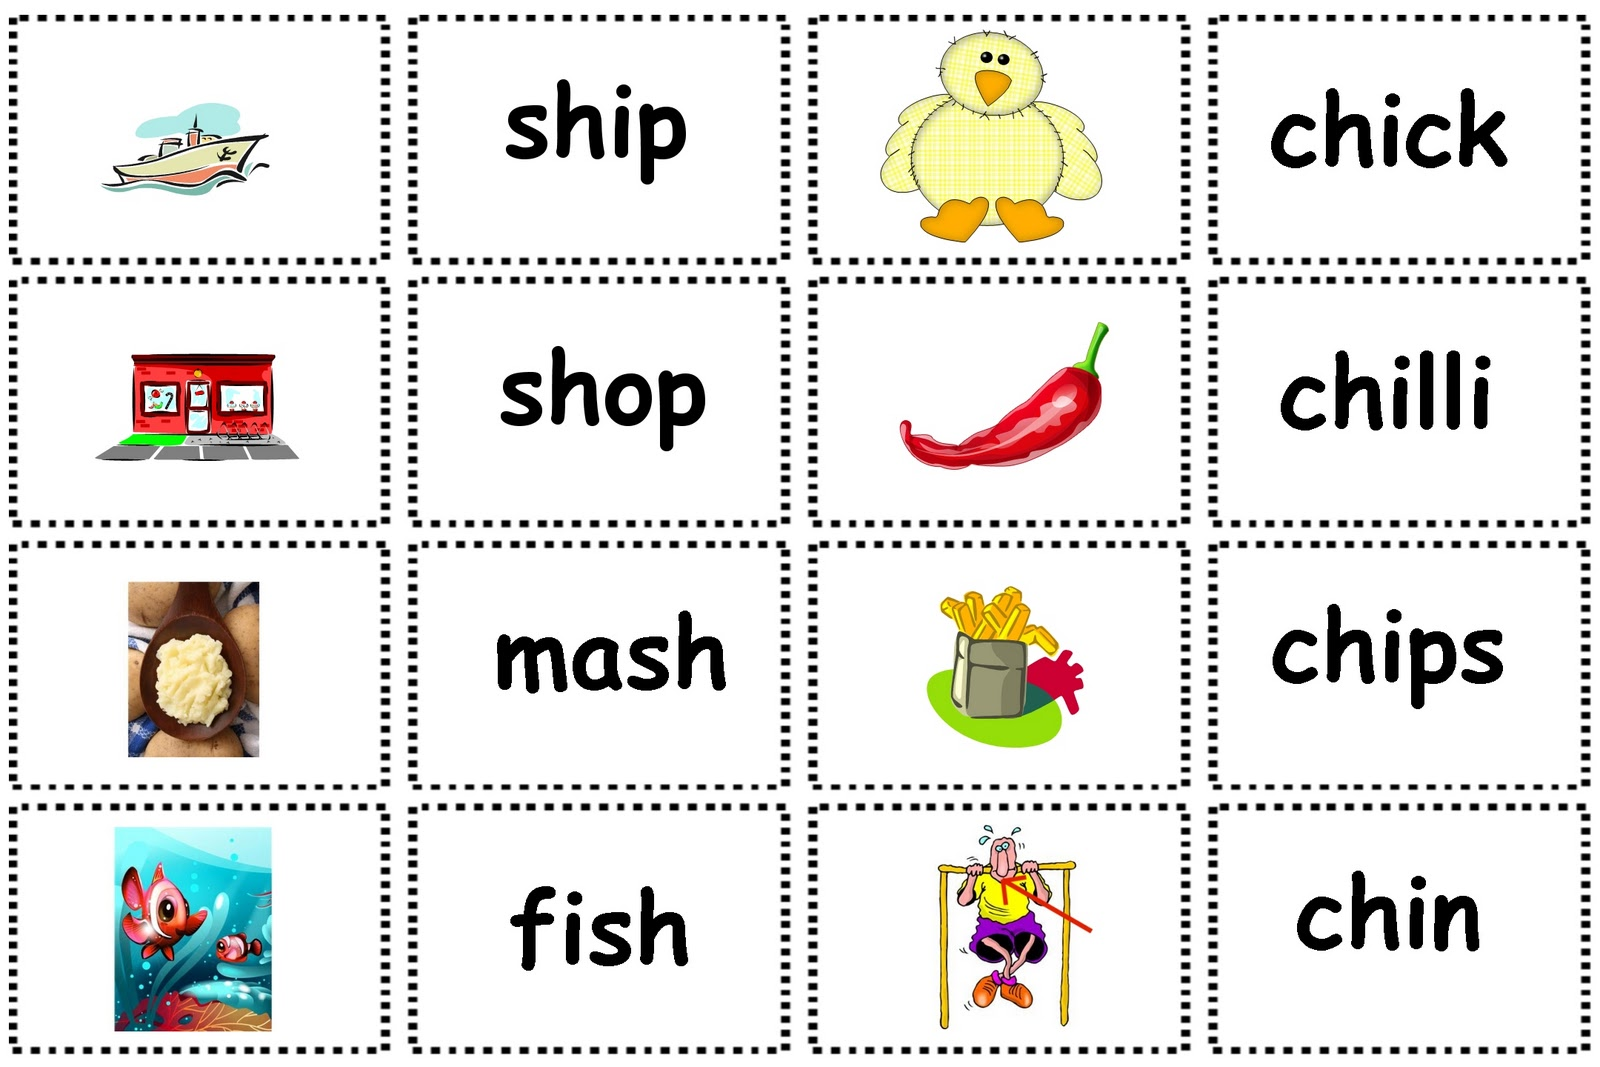 Worksheet Th Phonics worksheet wh worksheets phonics mikyu free ch sh th imperialdesignstudio debbie 39 s resource cupboard letters